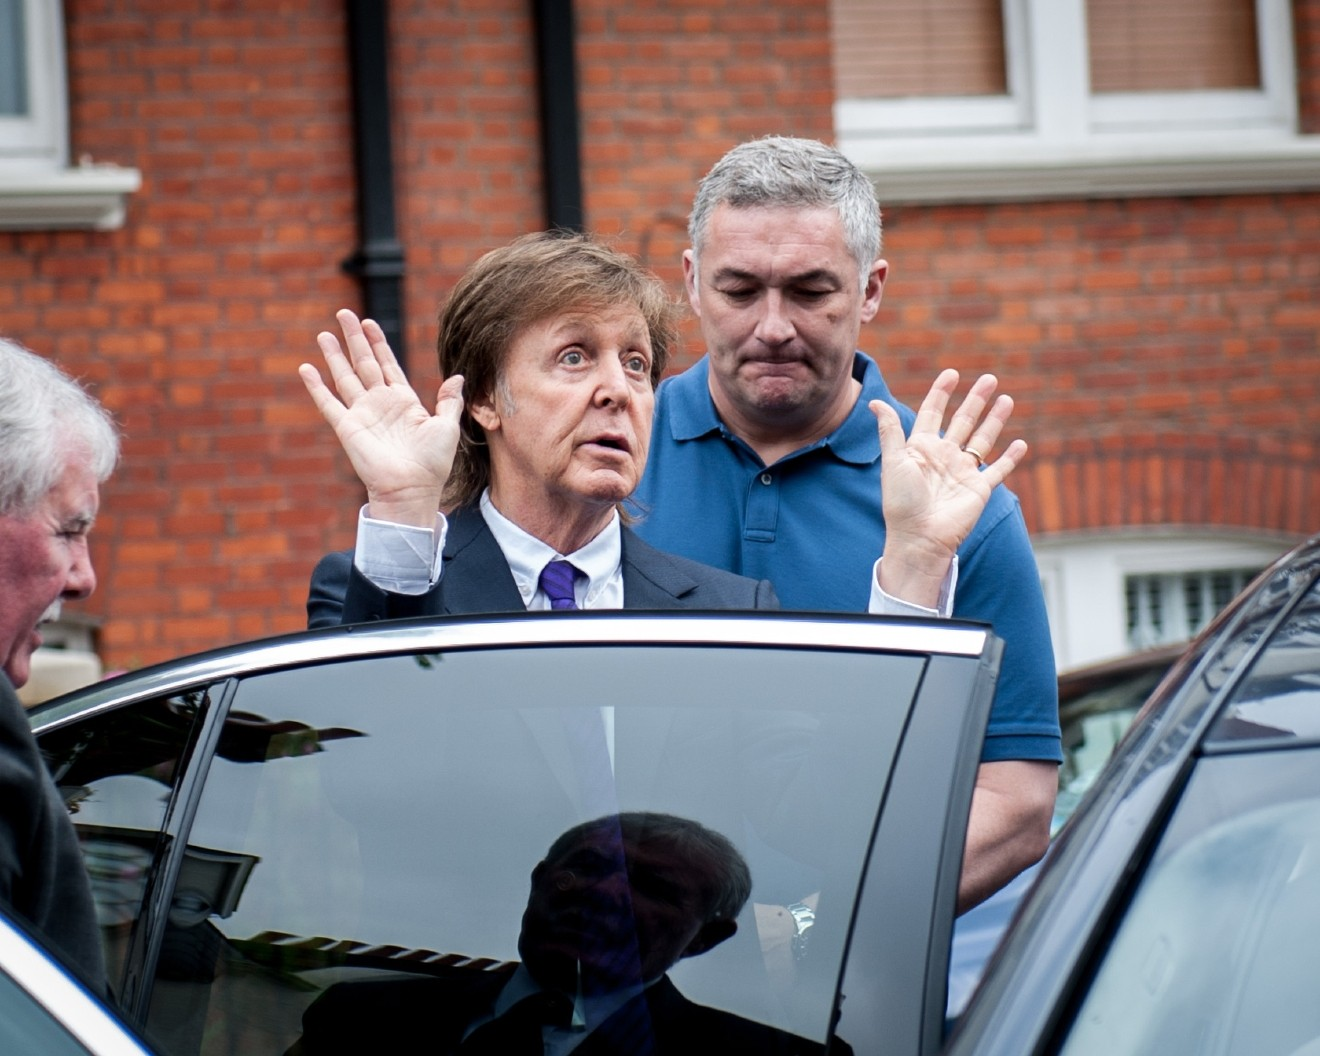 Sir Paul McCartney Singer Song Writer Arrives At The BBCAcAA